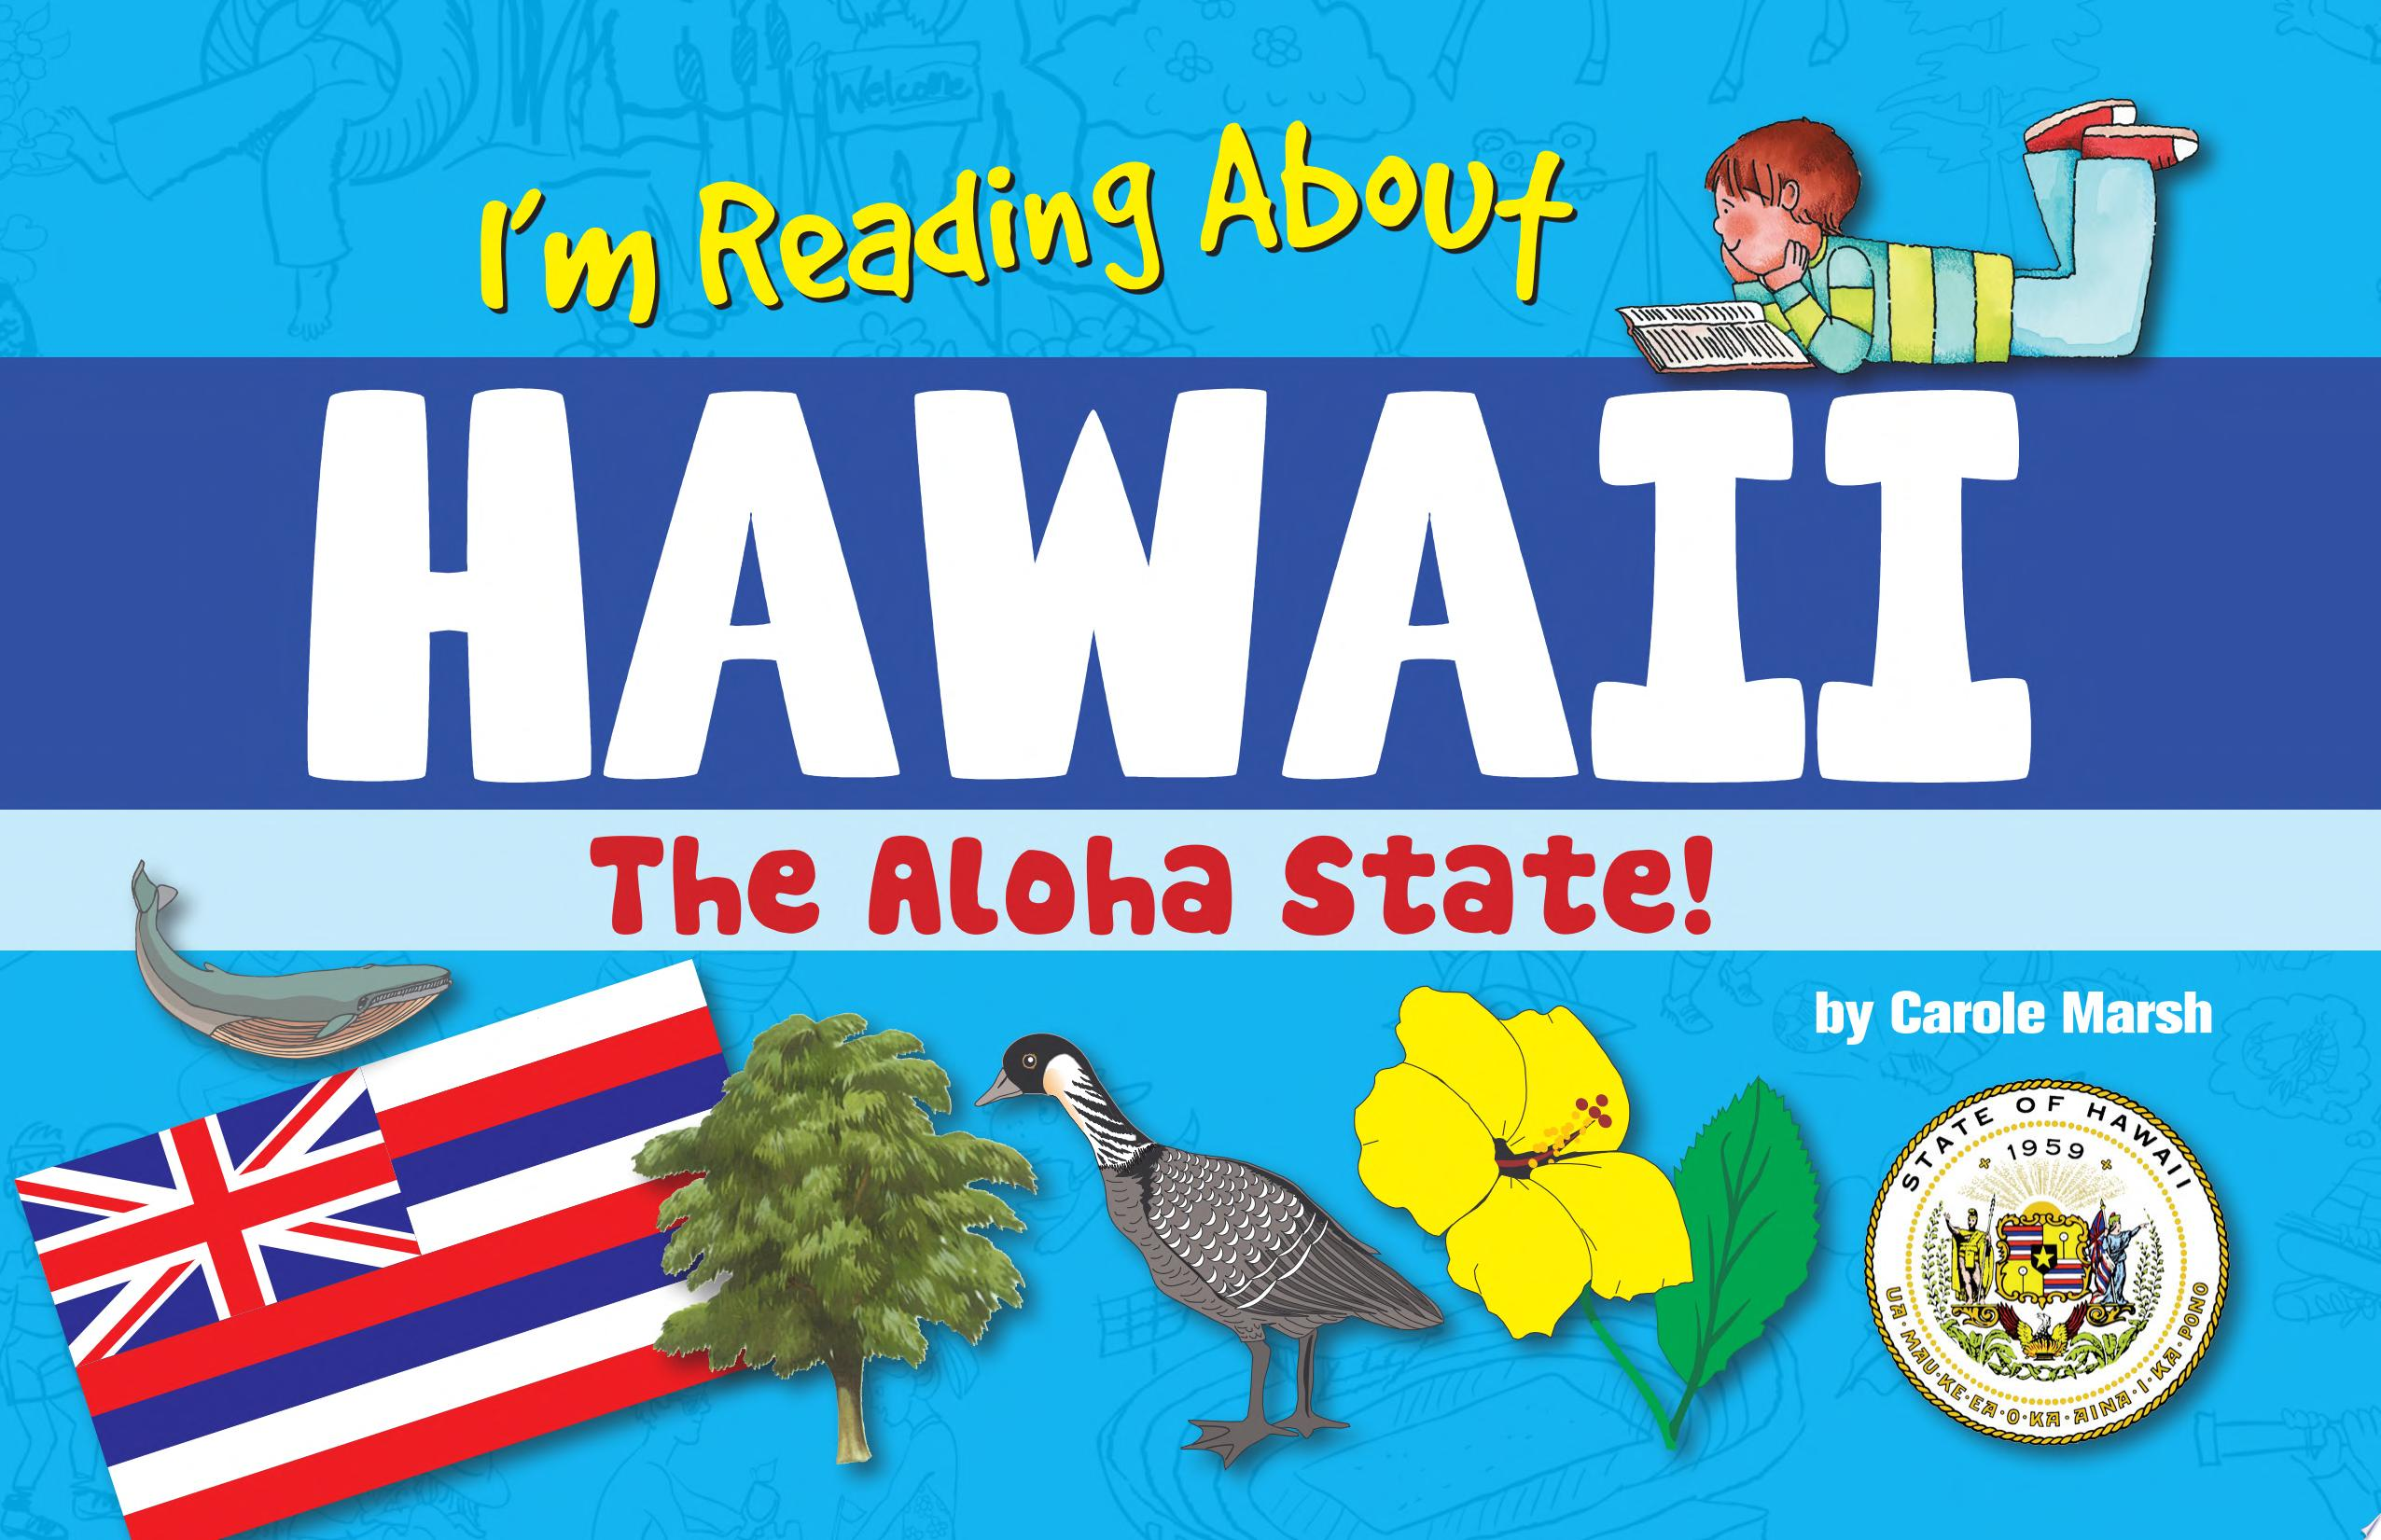 I m Reading About Hawaii